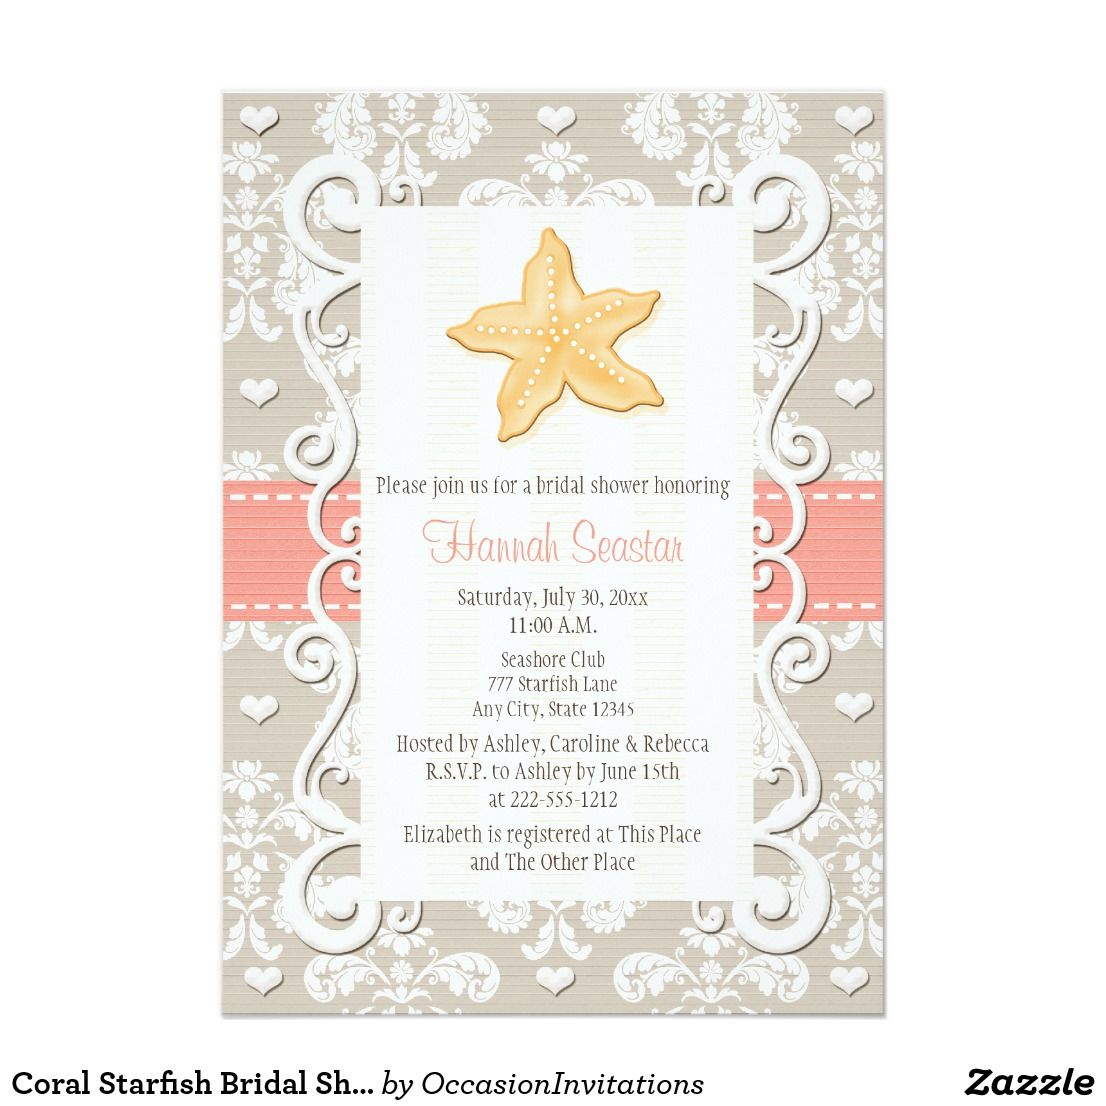 coral starfish bridal shower invitations pretty beach and nautical themed bridal shower invitations with a yellow starfish delicate swirl framed border and